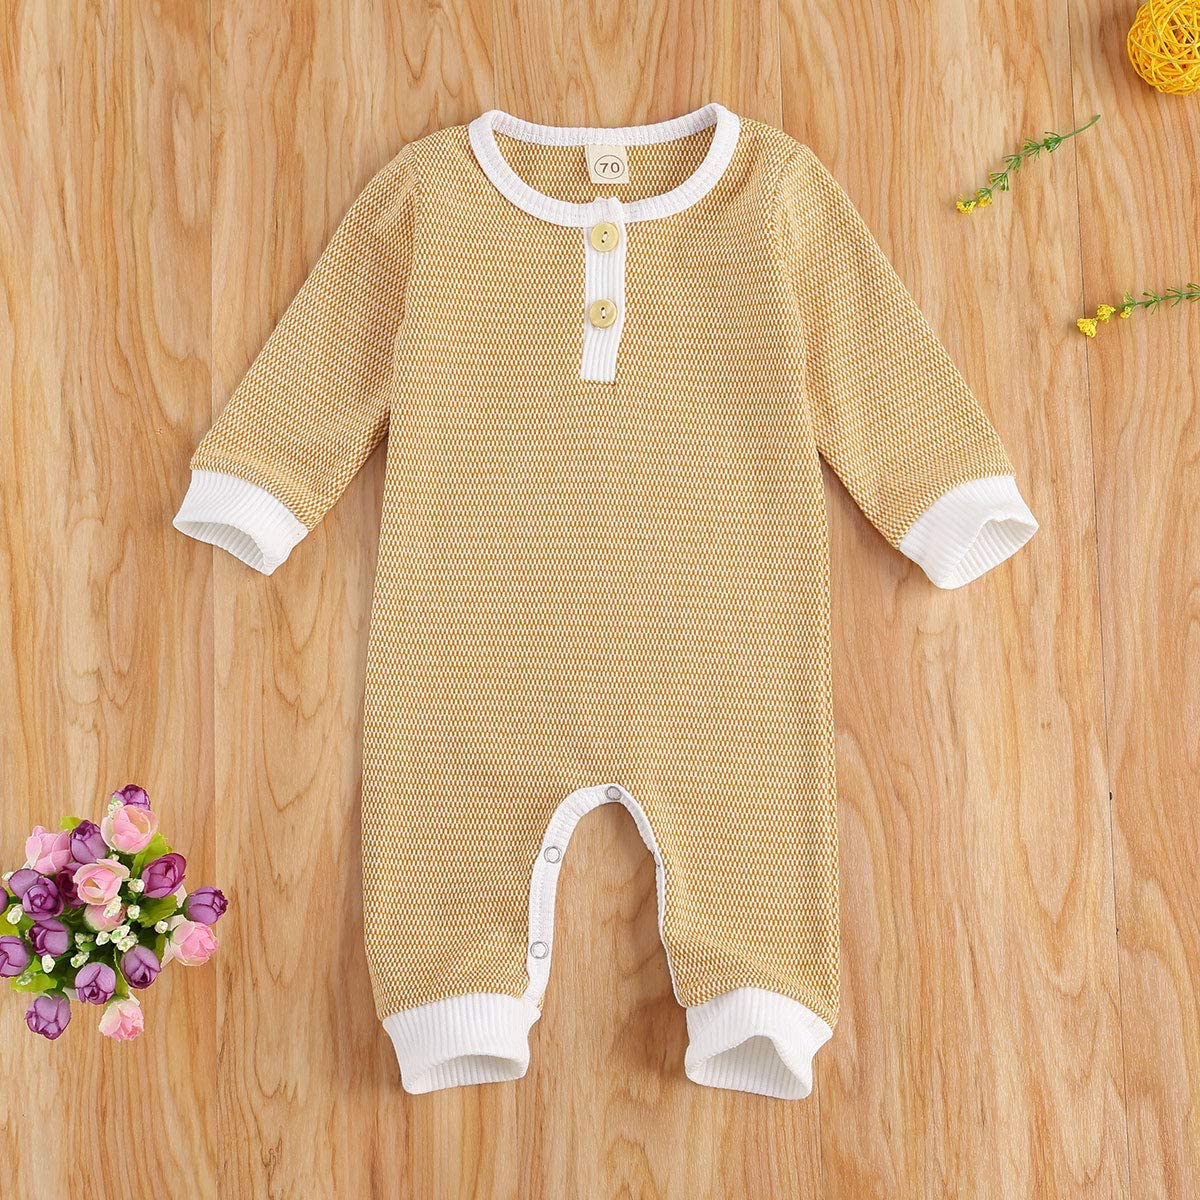 niceclould Newborn Baby Boy Girl Knitted Romper Jumpsuit Solid Long Sleeve Legging Bodysuit Playsuit Clothes Winter 0-18M